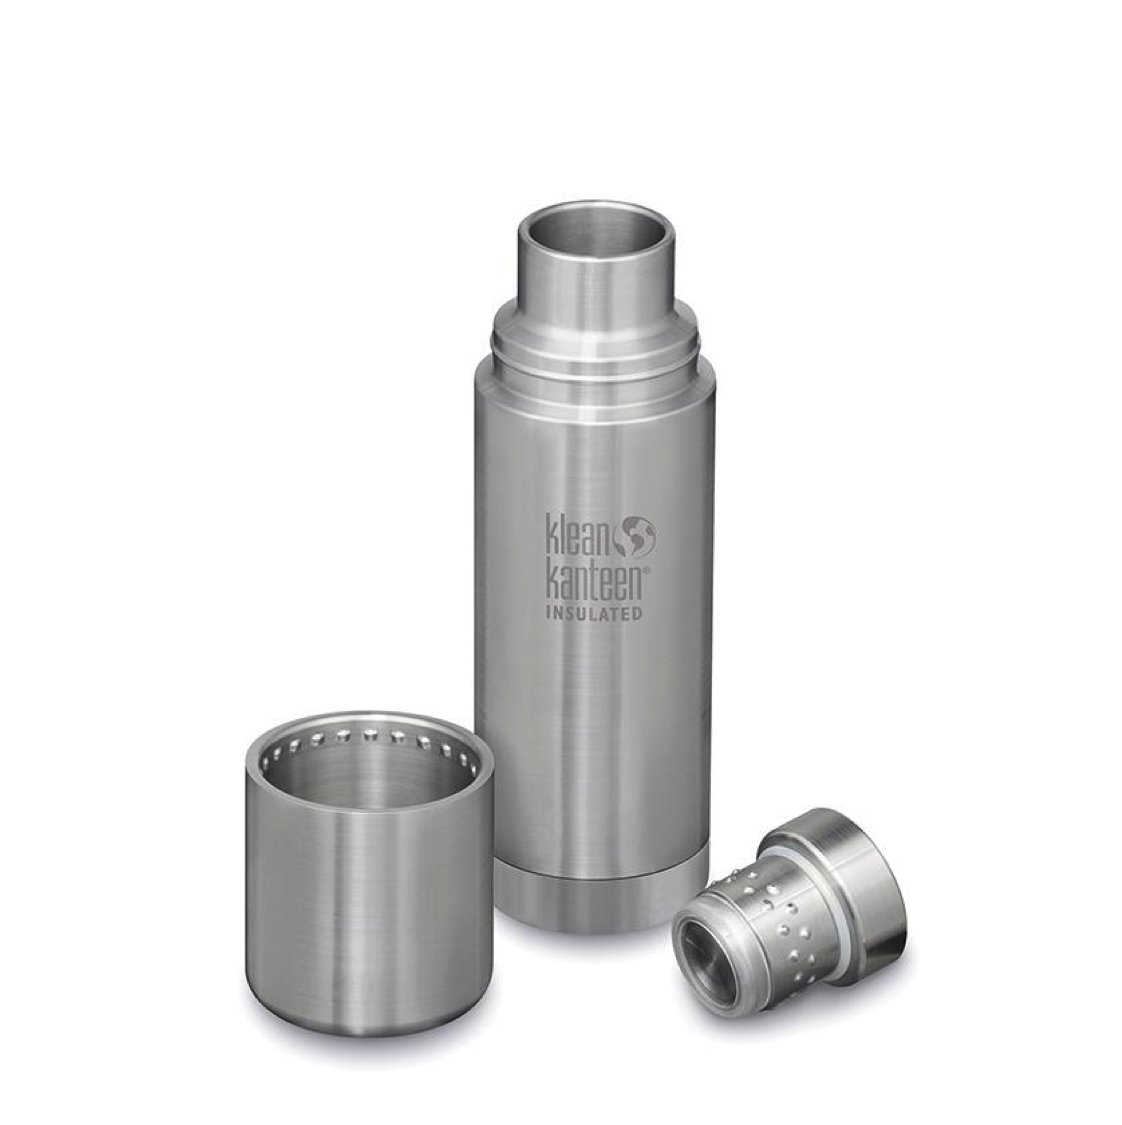 TKPRO_CHICO_PLATEADO_16OZ_Gris_brushed_staninles-1.png